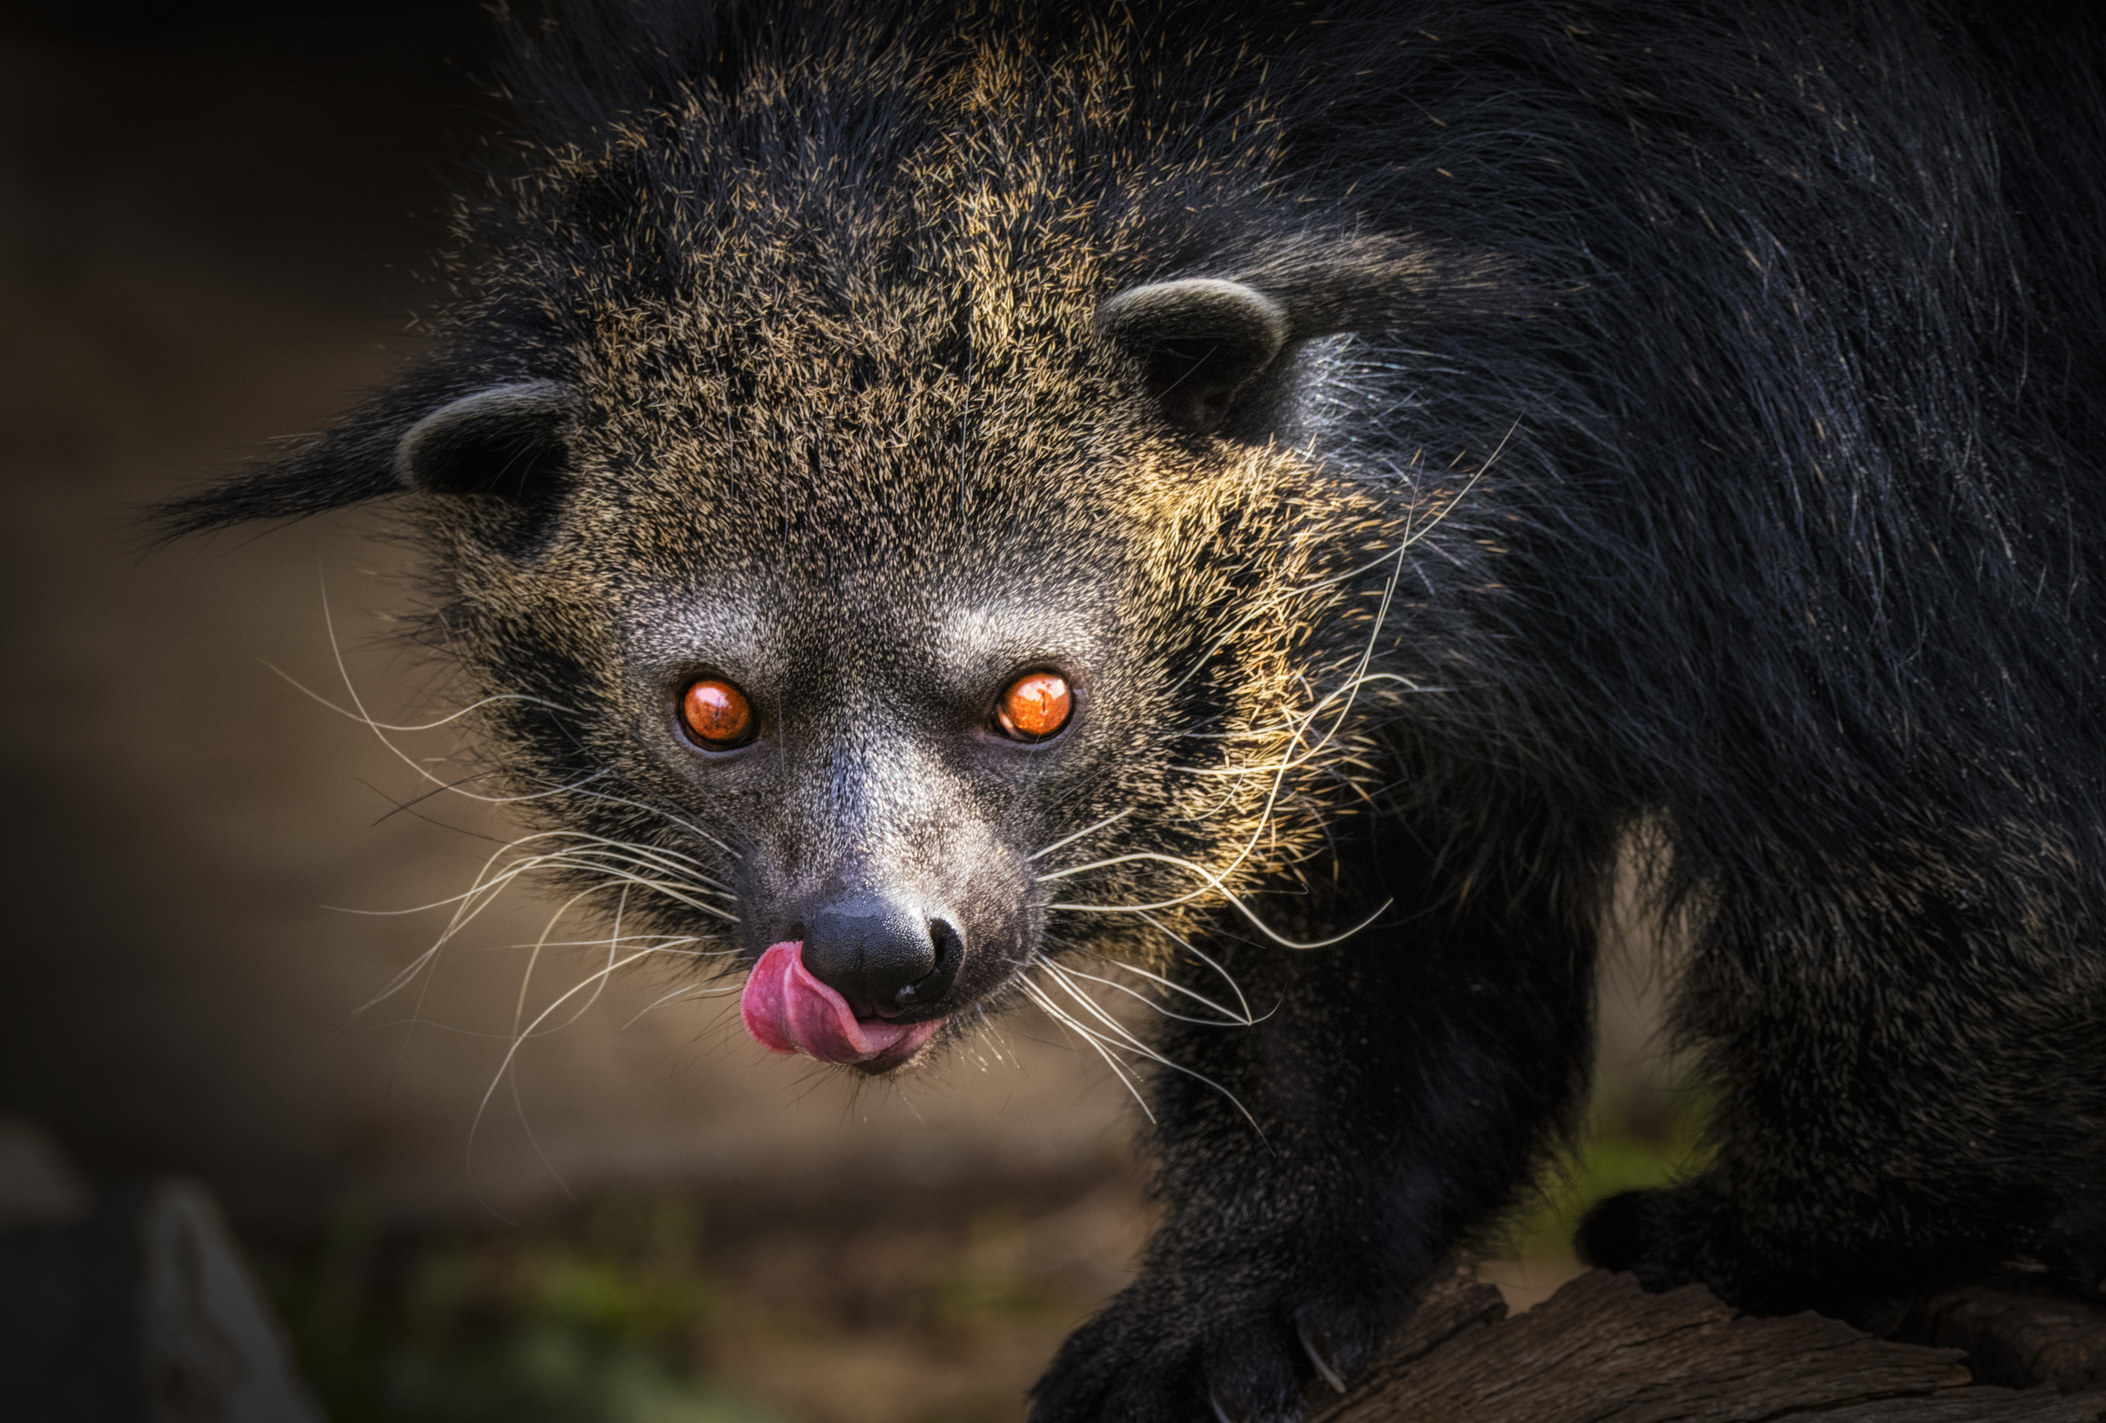 A red eyed animal with messy whiskers and fur